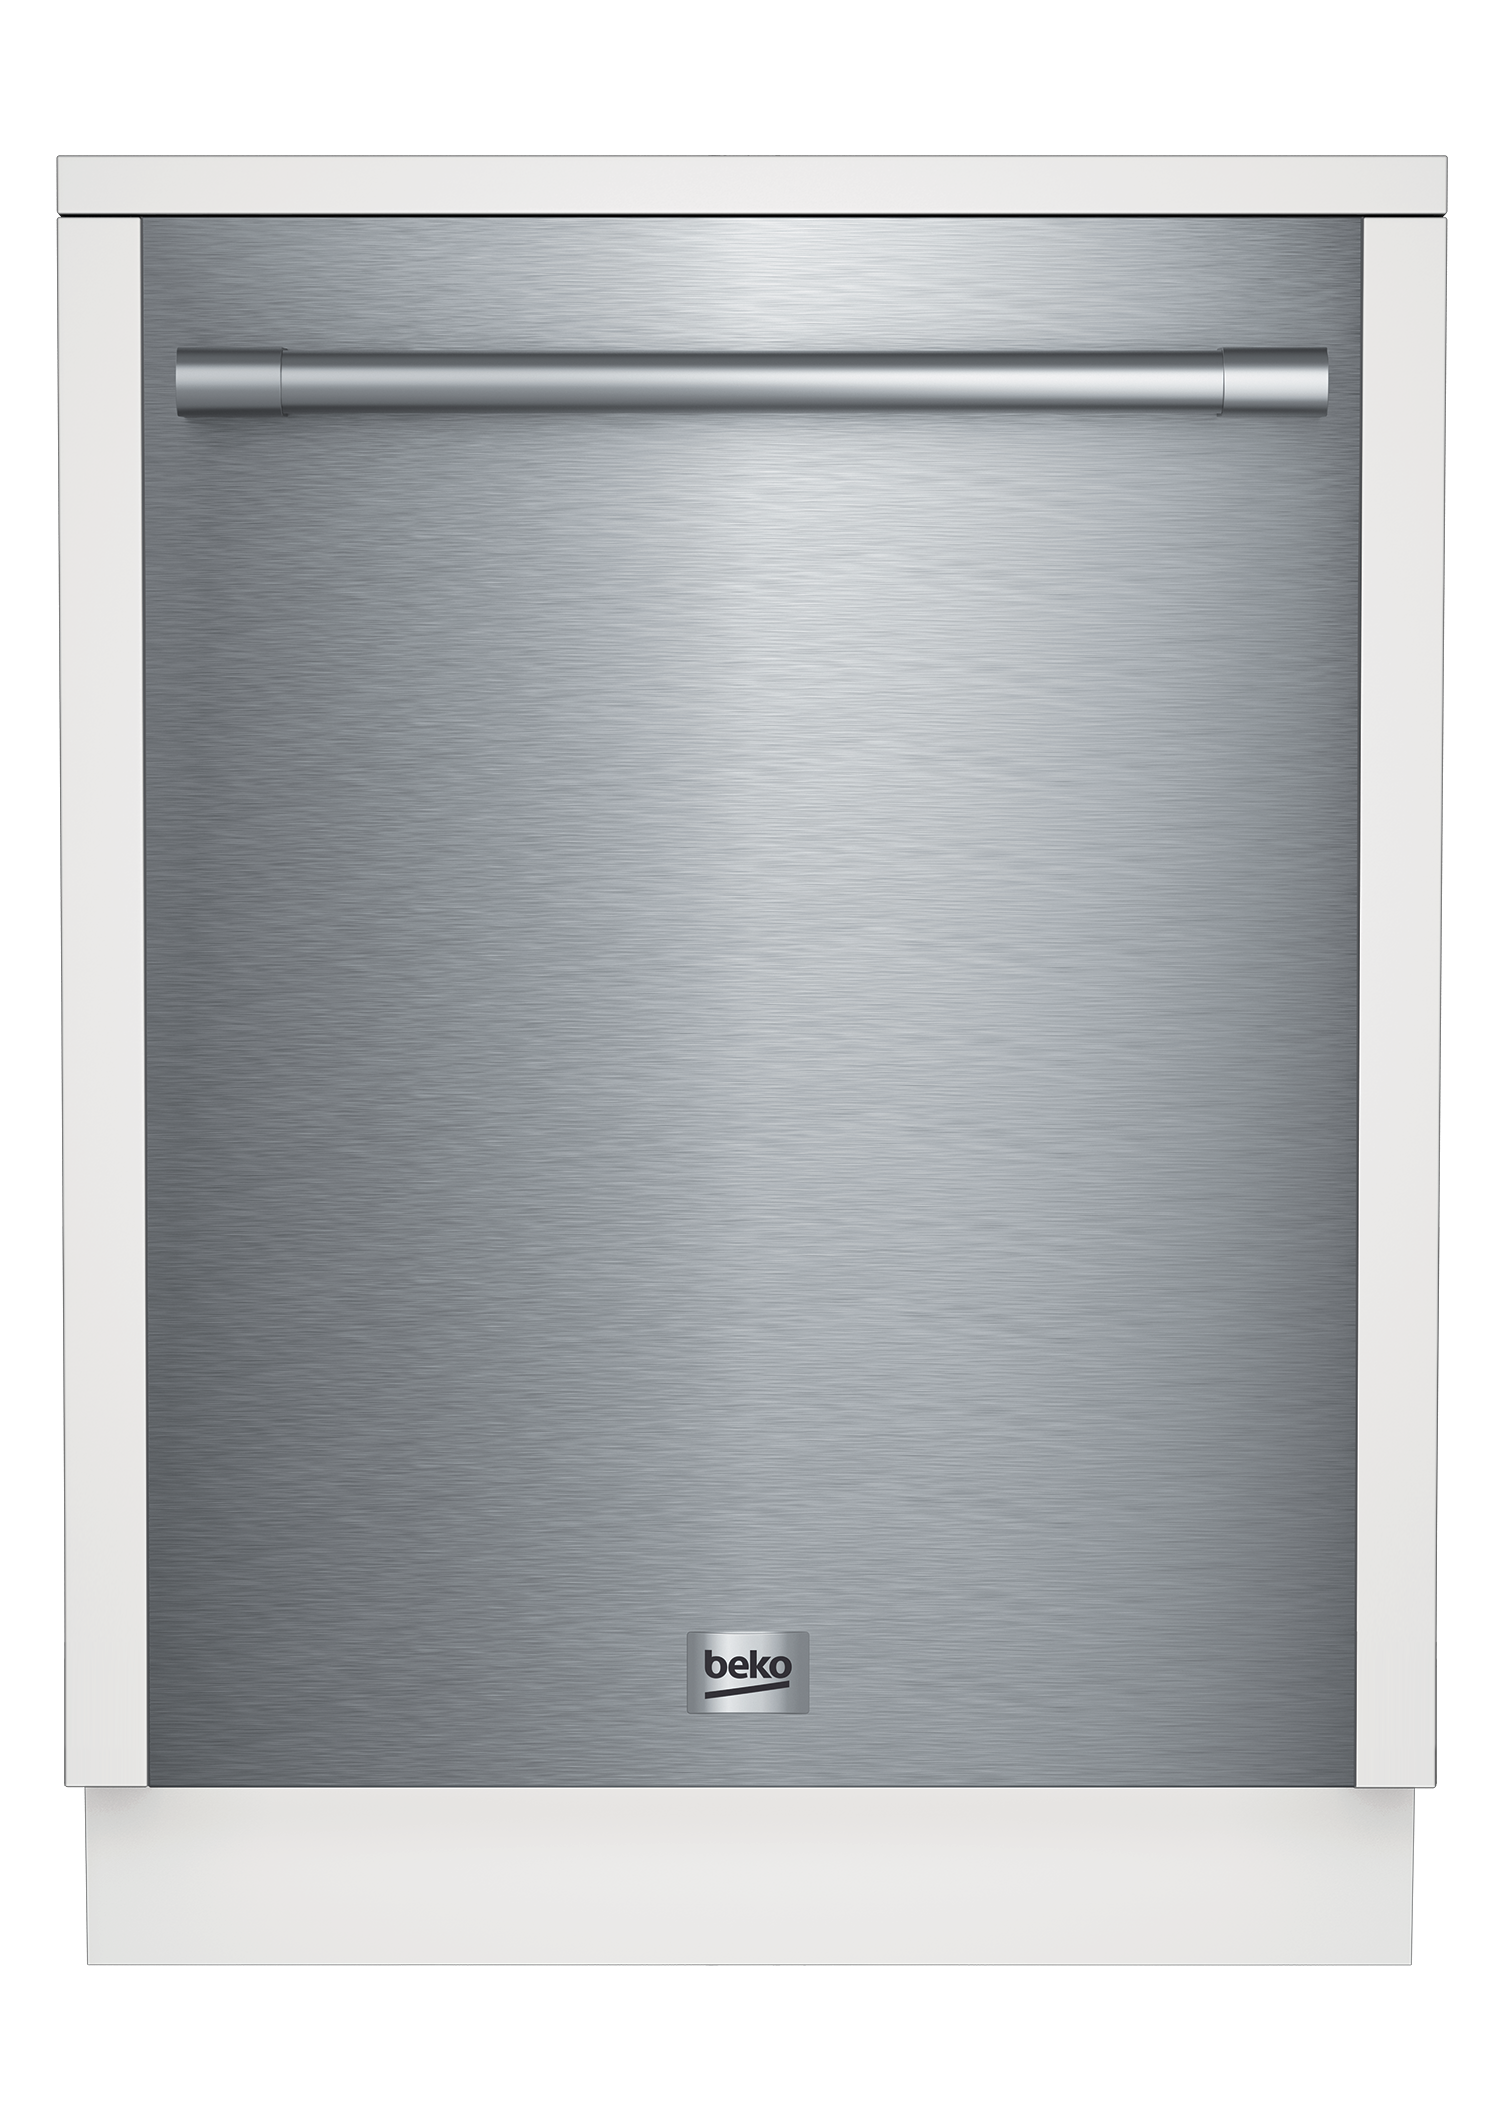 Tall Tub Stainless Dishwasher, 14 place settings, 48 dBA, Top Control DDT25400XP